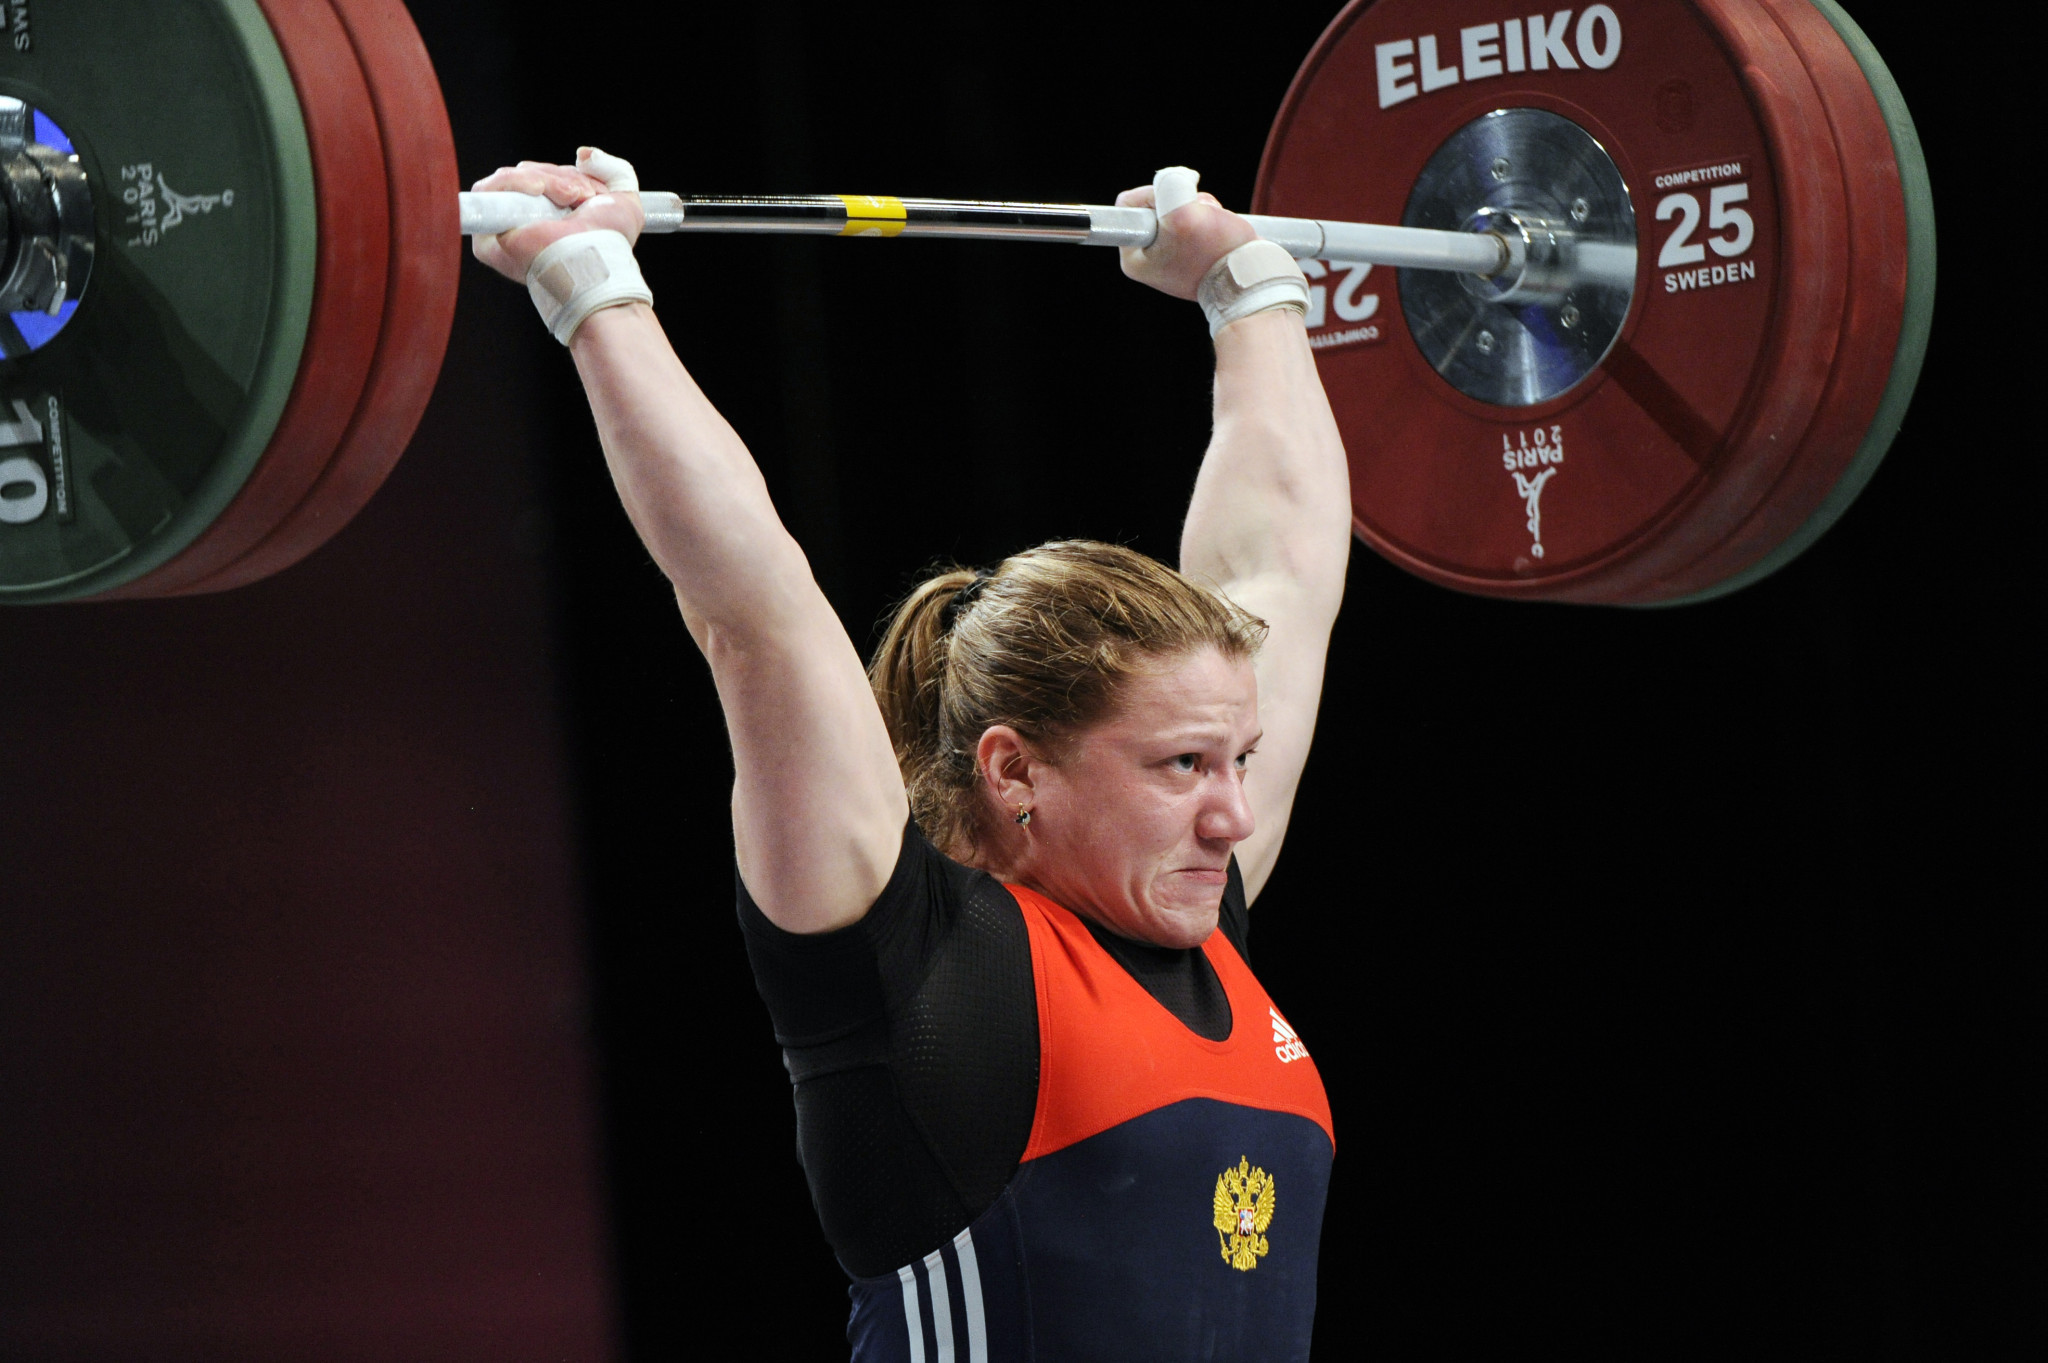 Svetlana Shimkova has been provisionally suspended on a doping charge by the IWF